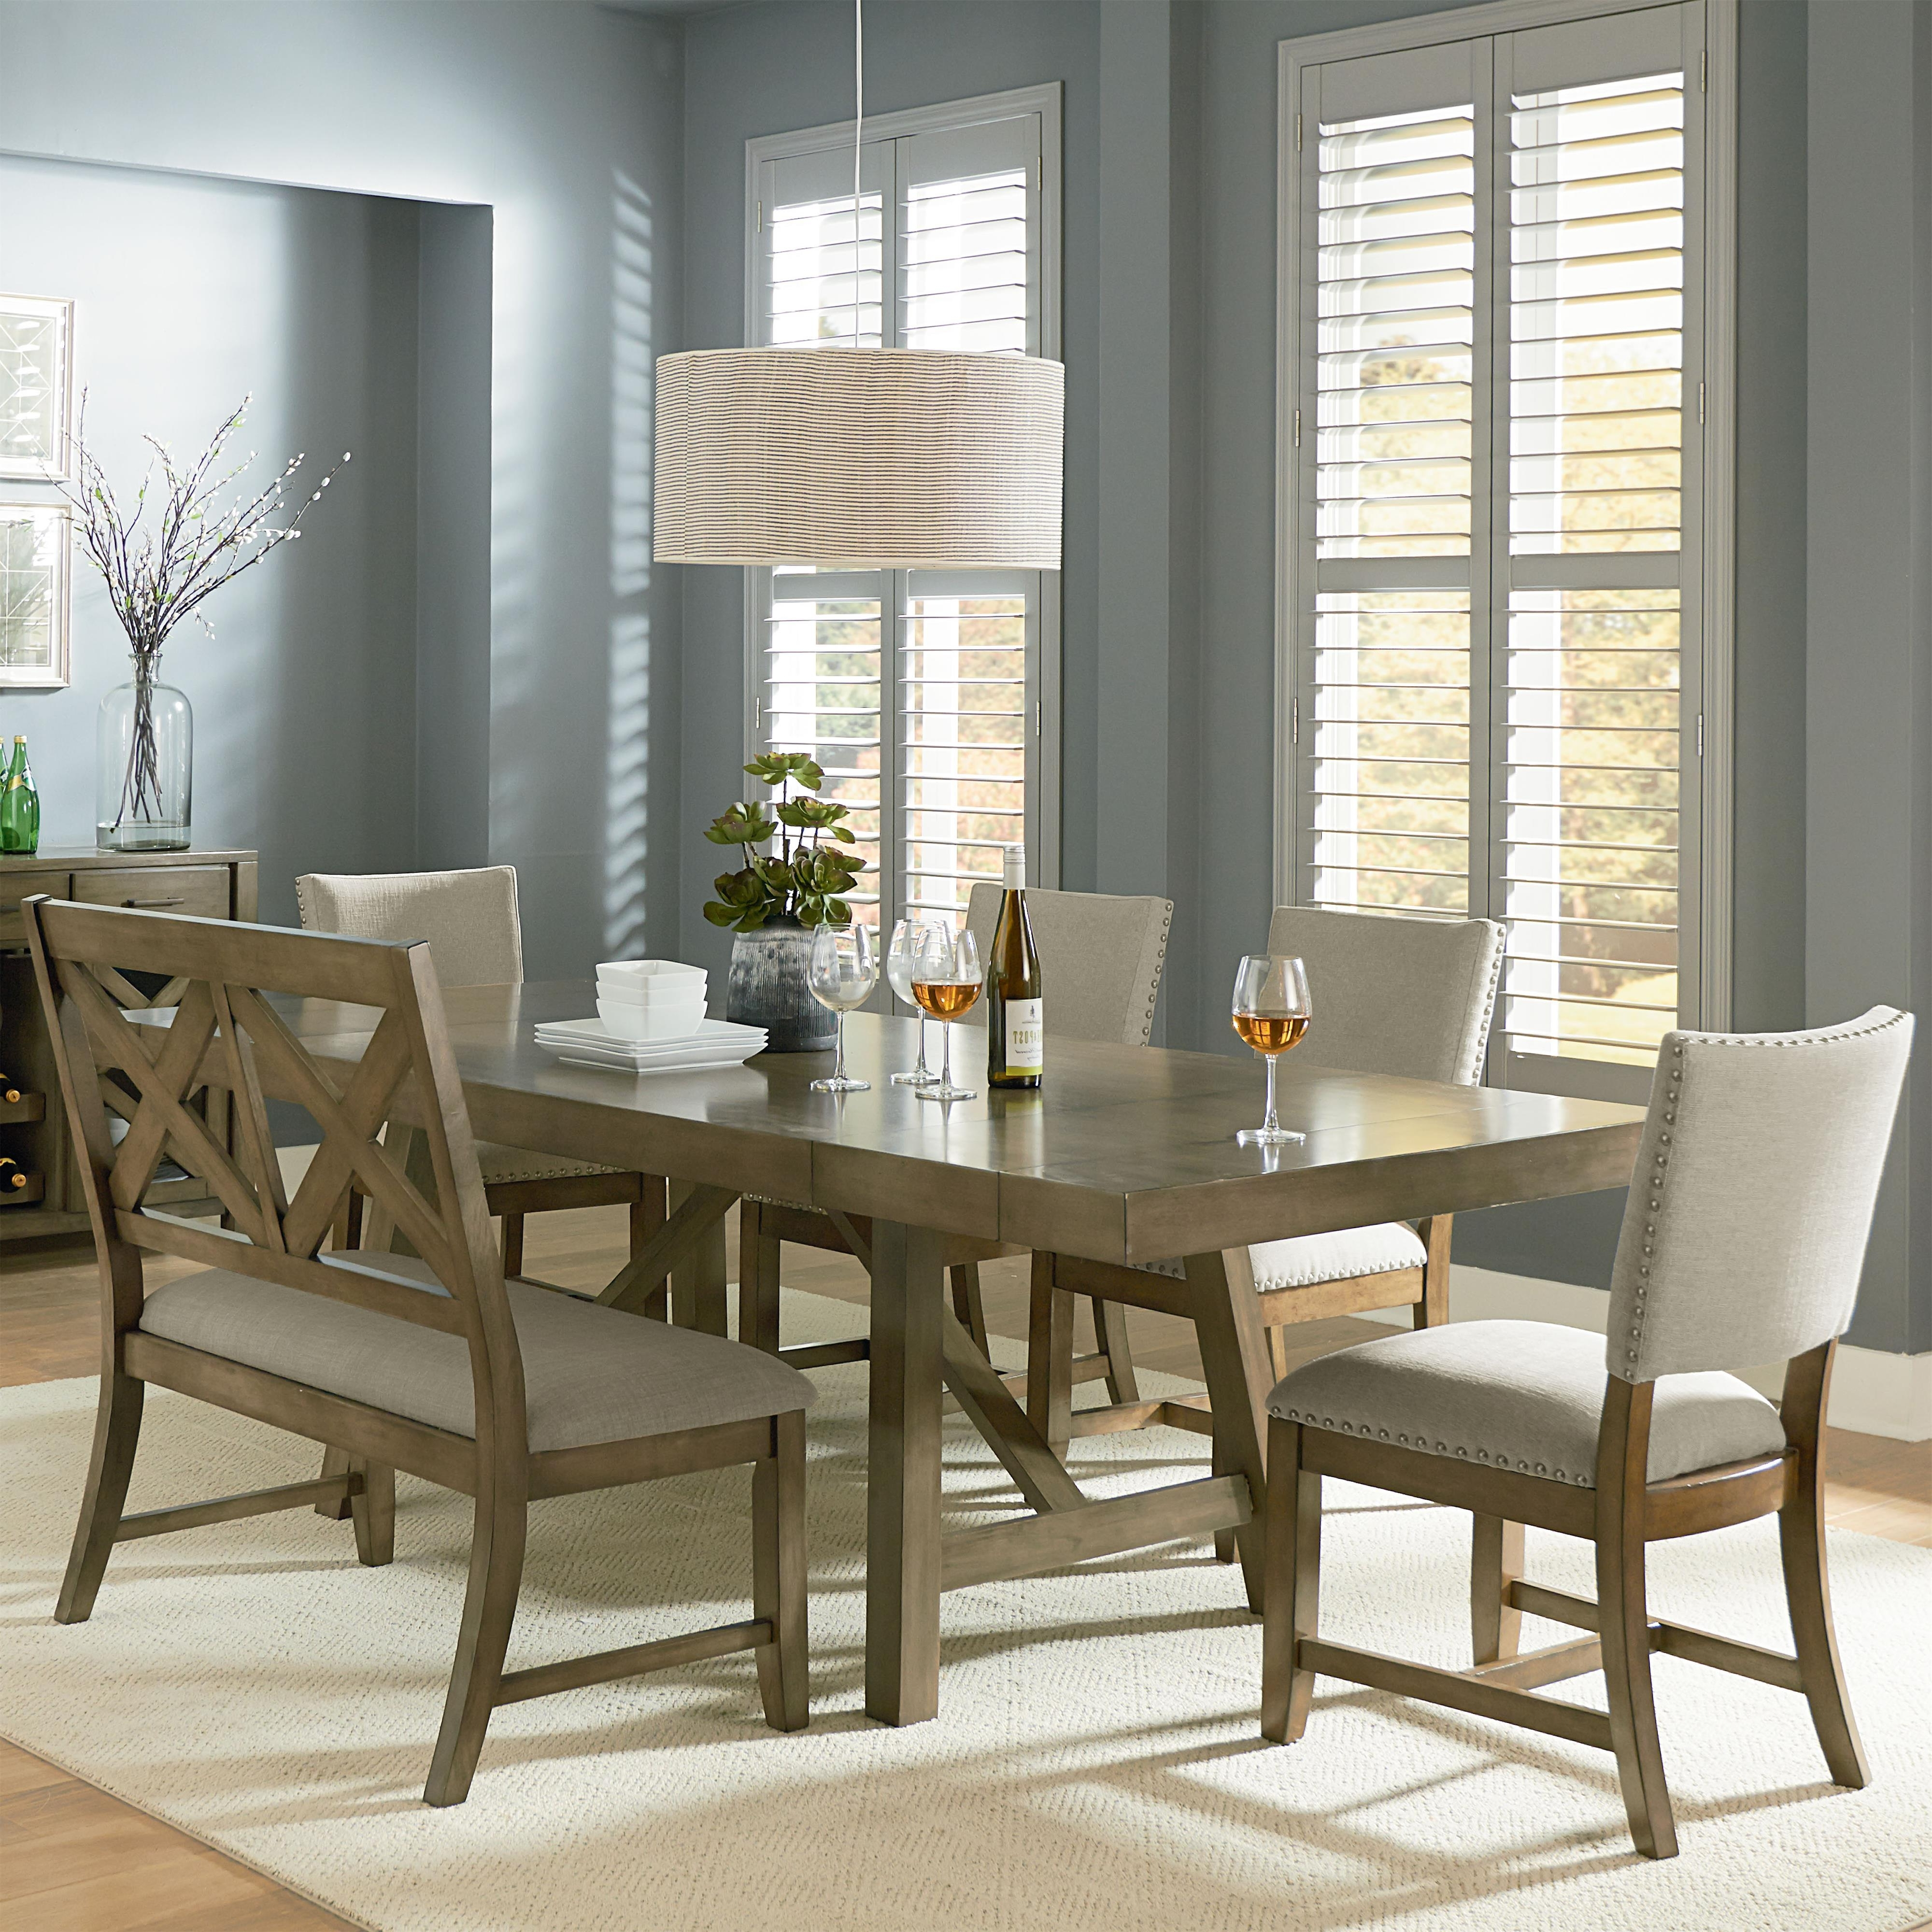 6 Piece Trestle Table Dining Set With Dining Benchstandard regarding Most Current Parquet 6 Piece Dining Sets